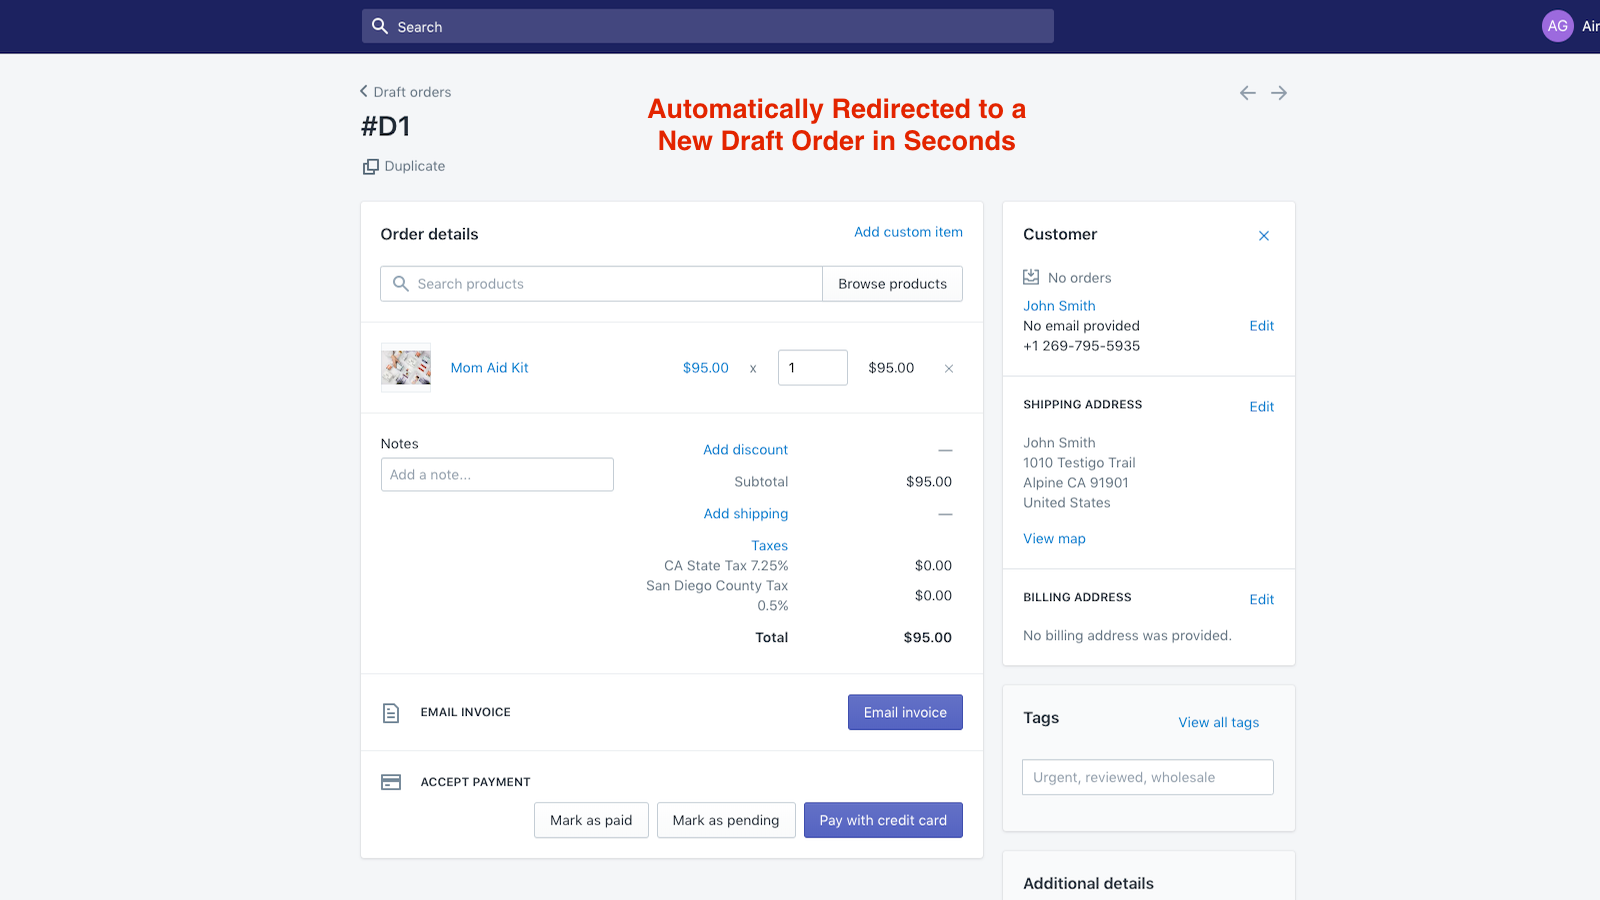 Create a Draft Order in Seconds from an Abandoned Checkout!